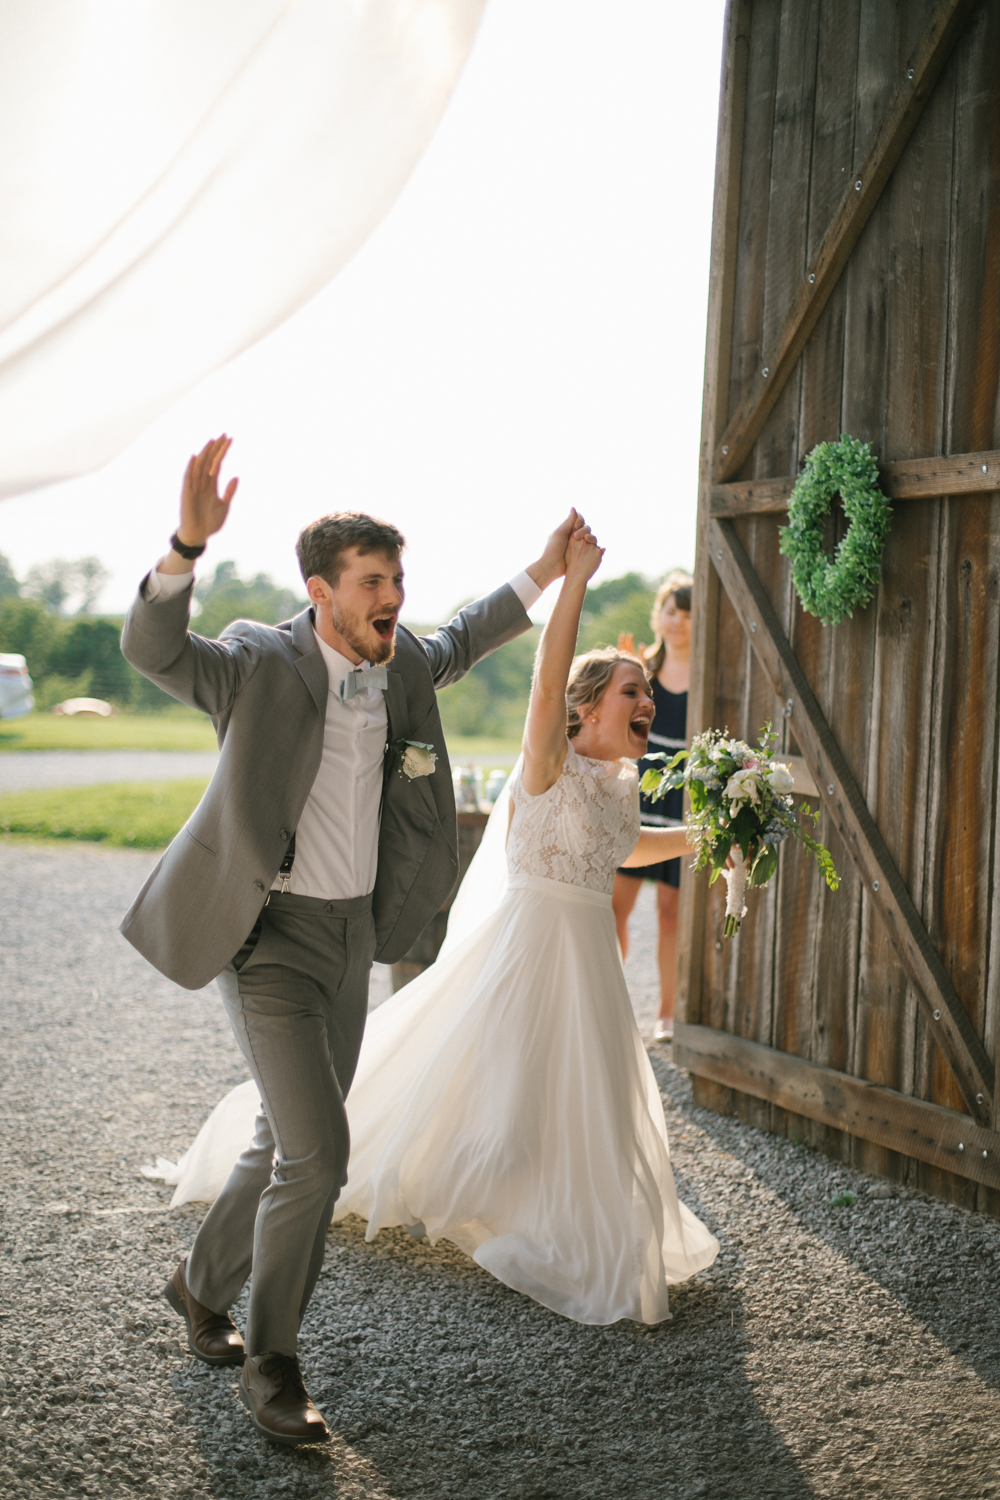 2019.06.01_CraskWedding_Starks-172.jpg